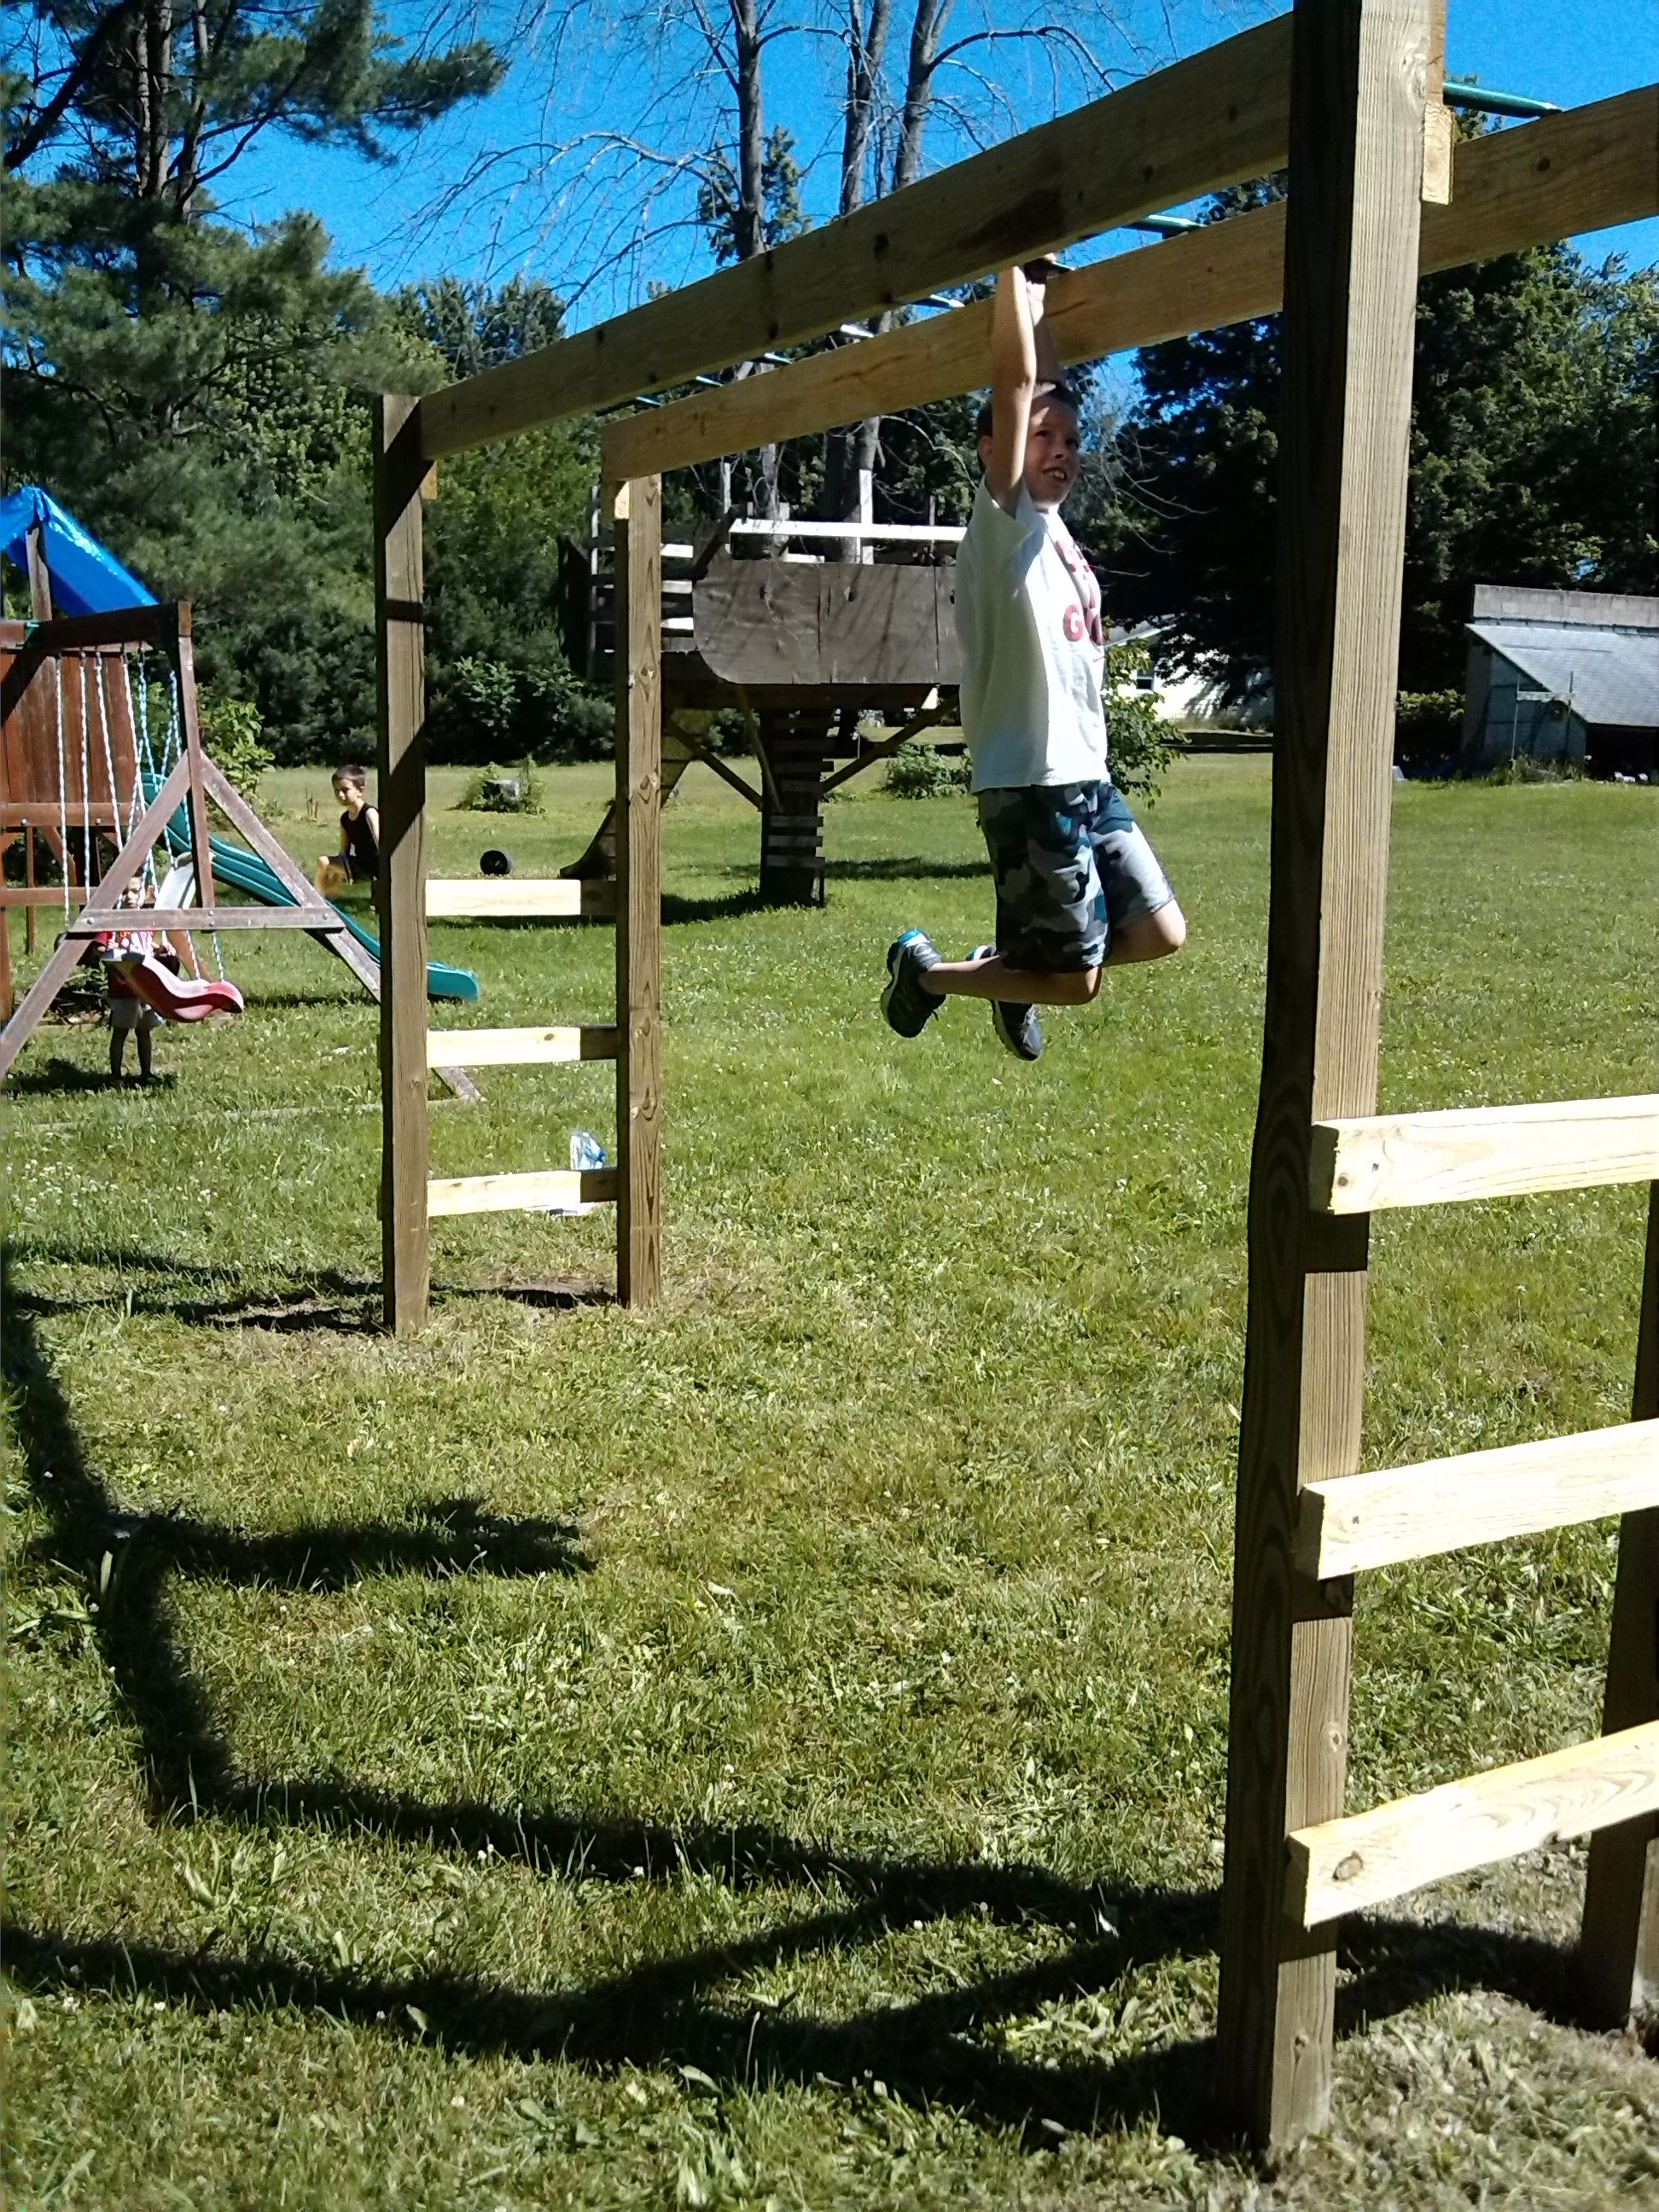 you can build monkey bars in your backyard in a weekend for around